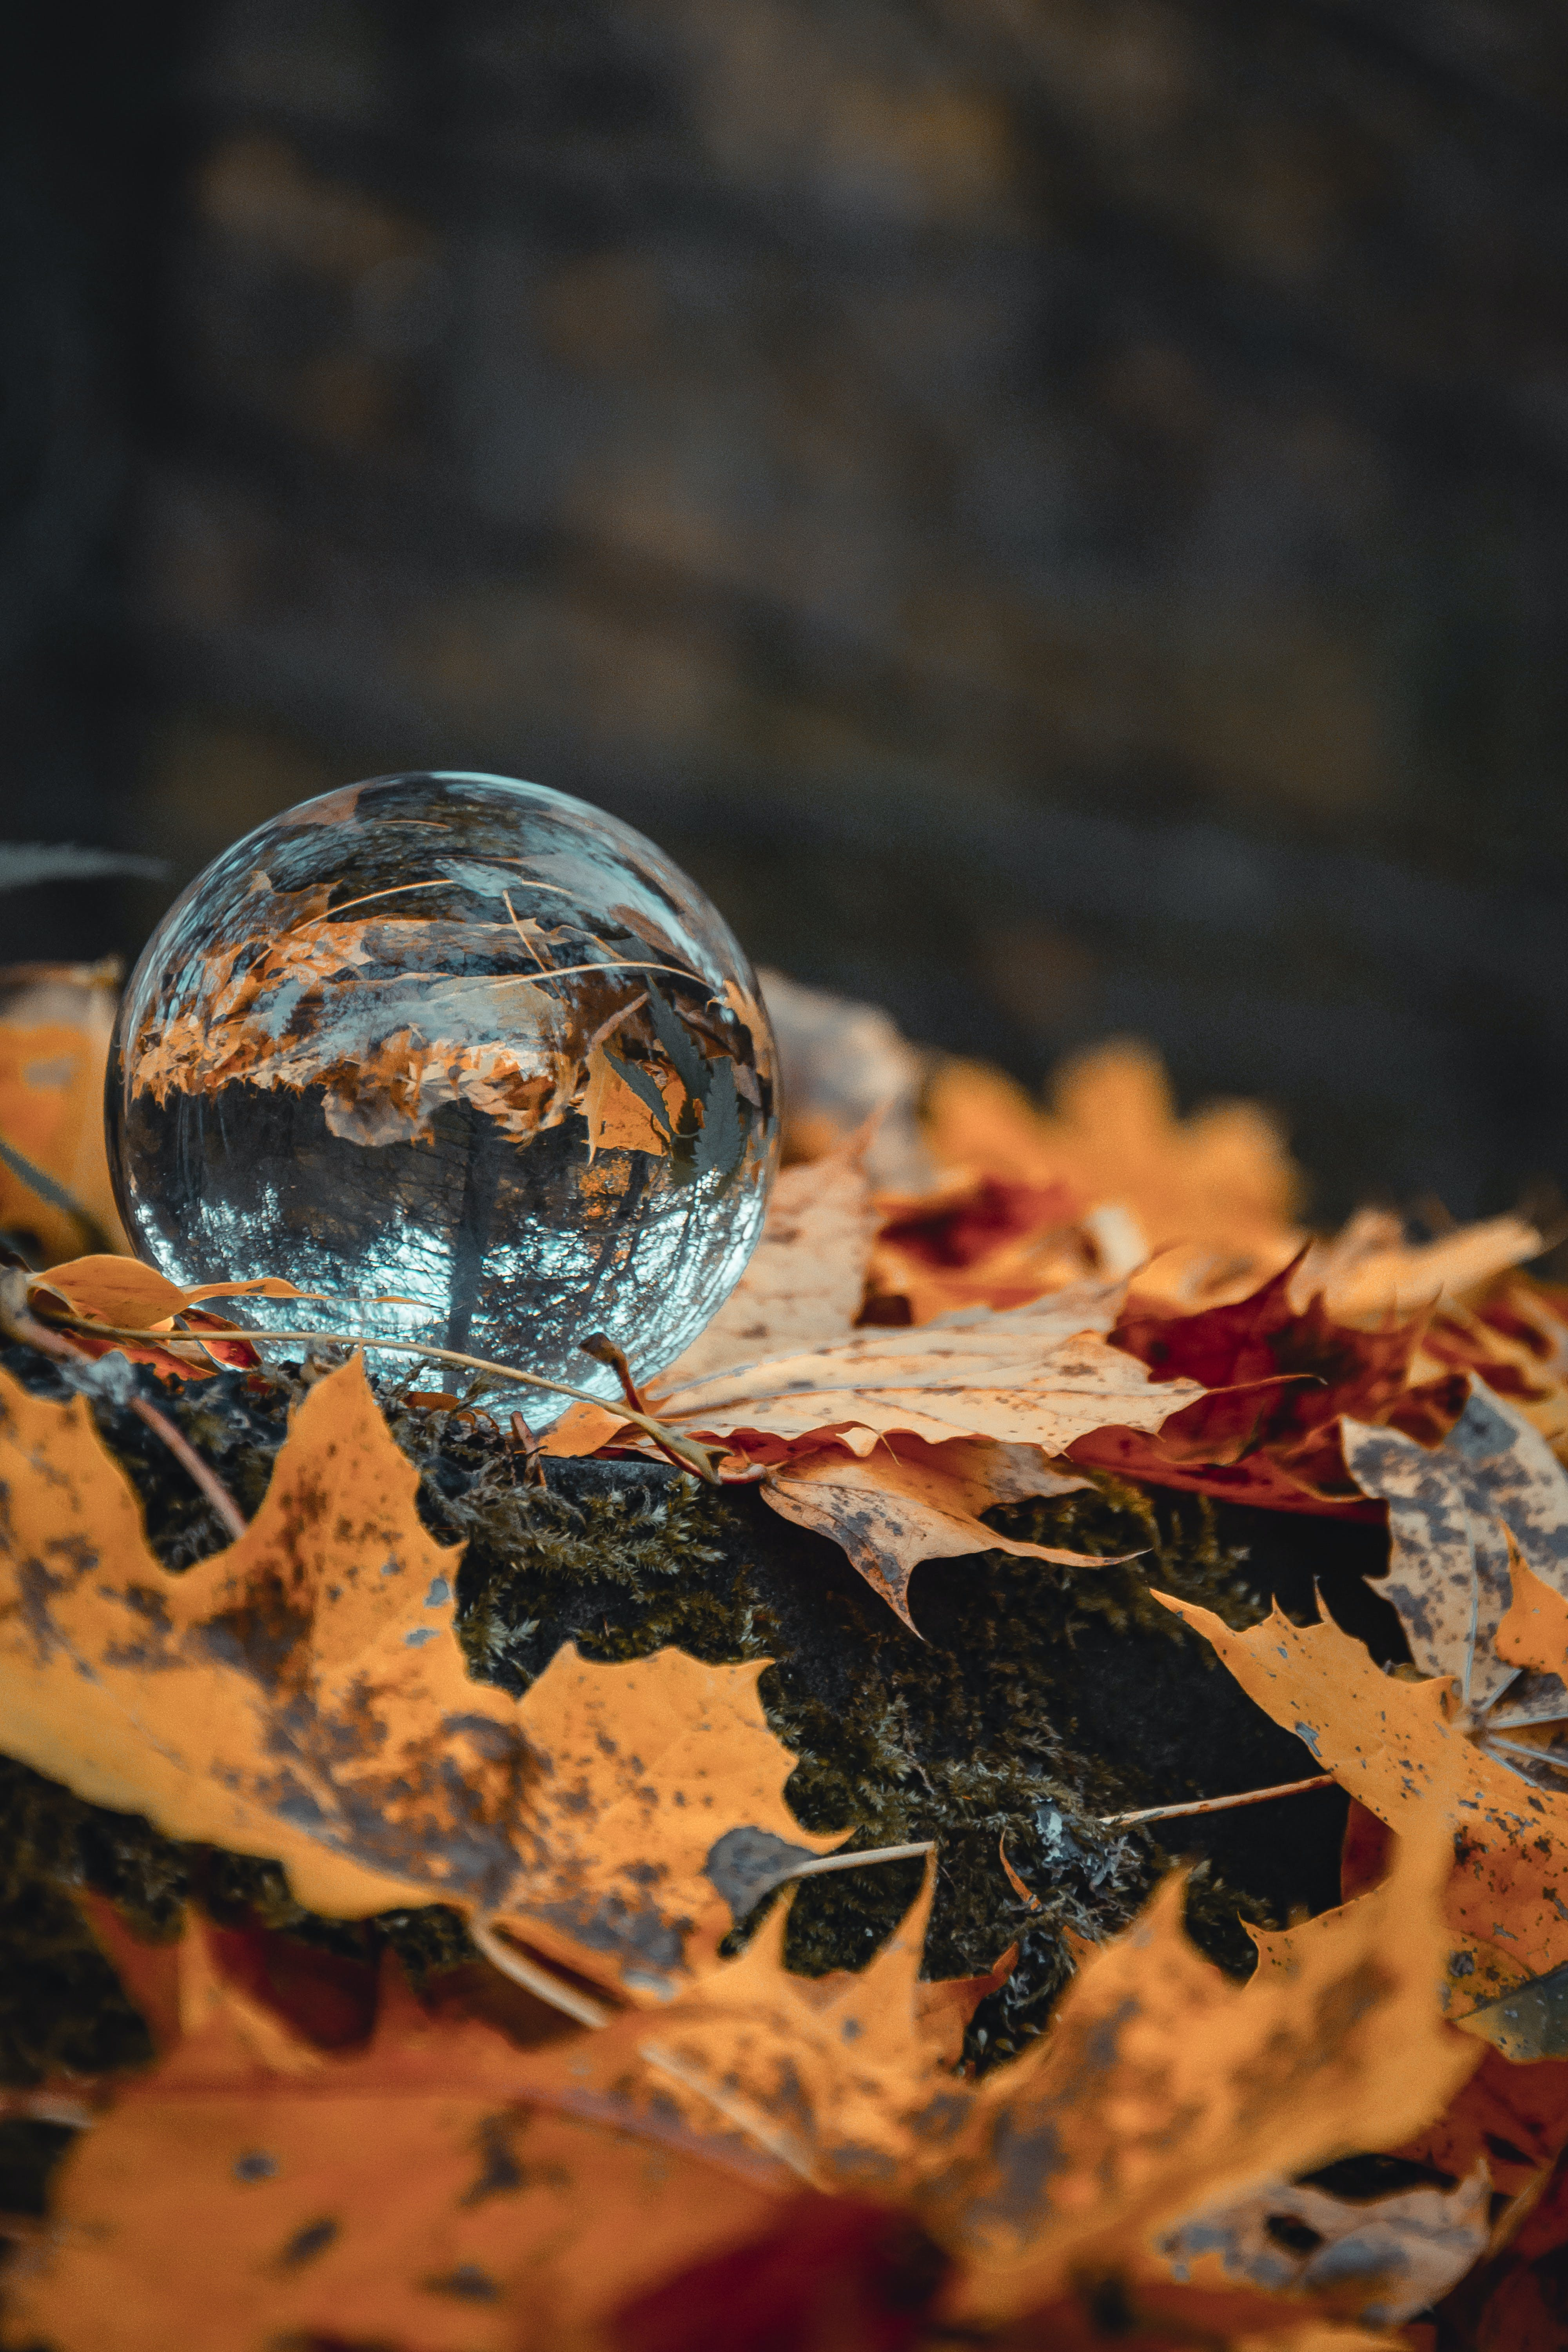 Round Clear Ball on Maple Leaves